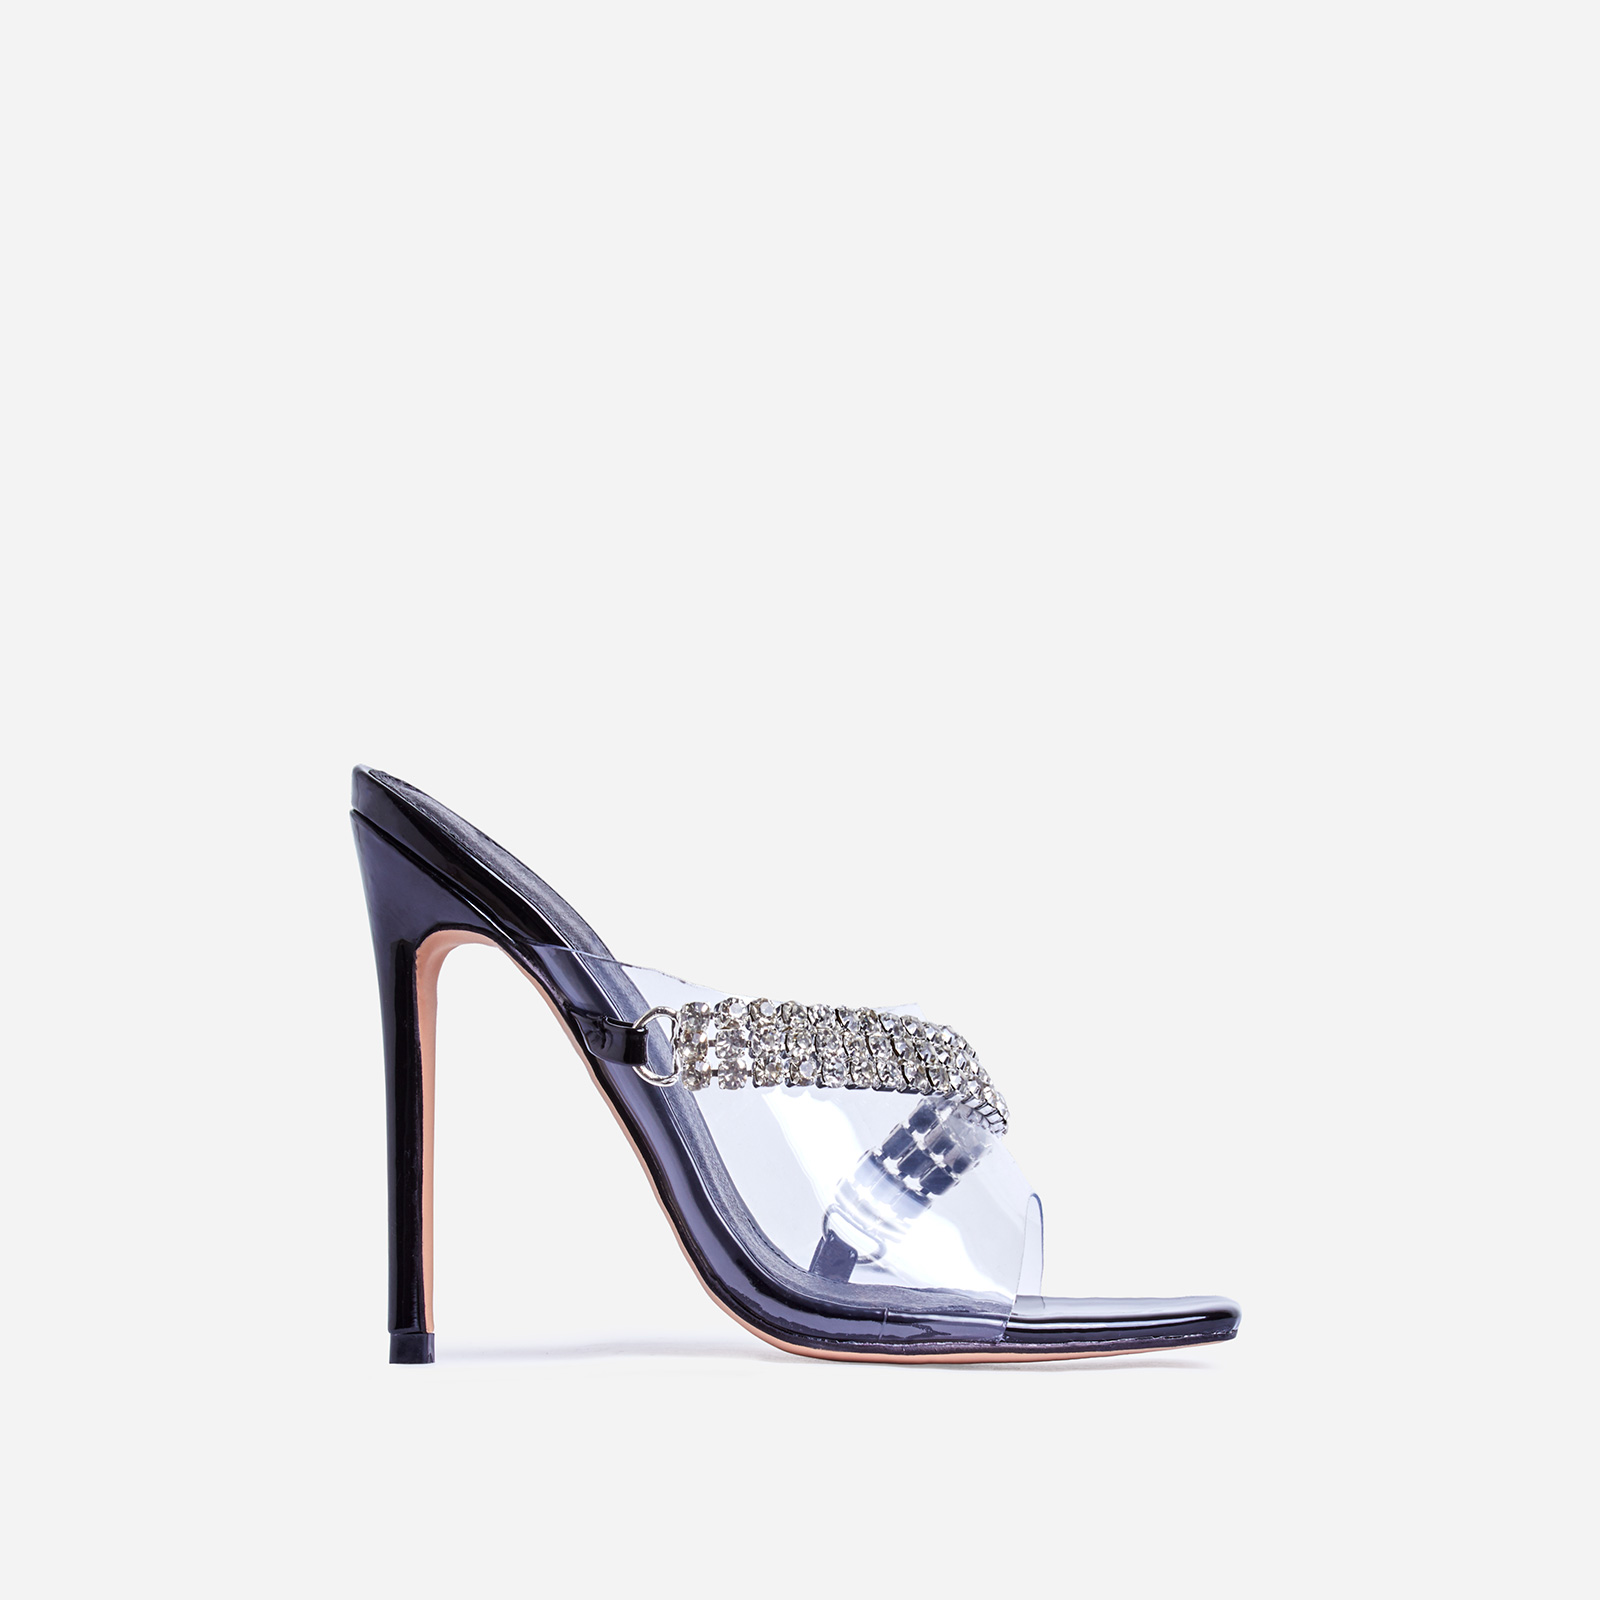 Peggy Diamante Detail  Square Peep Toe Heel Mule In Black Patent